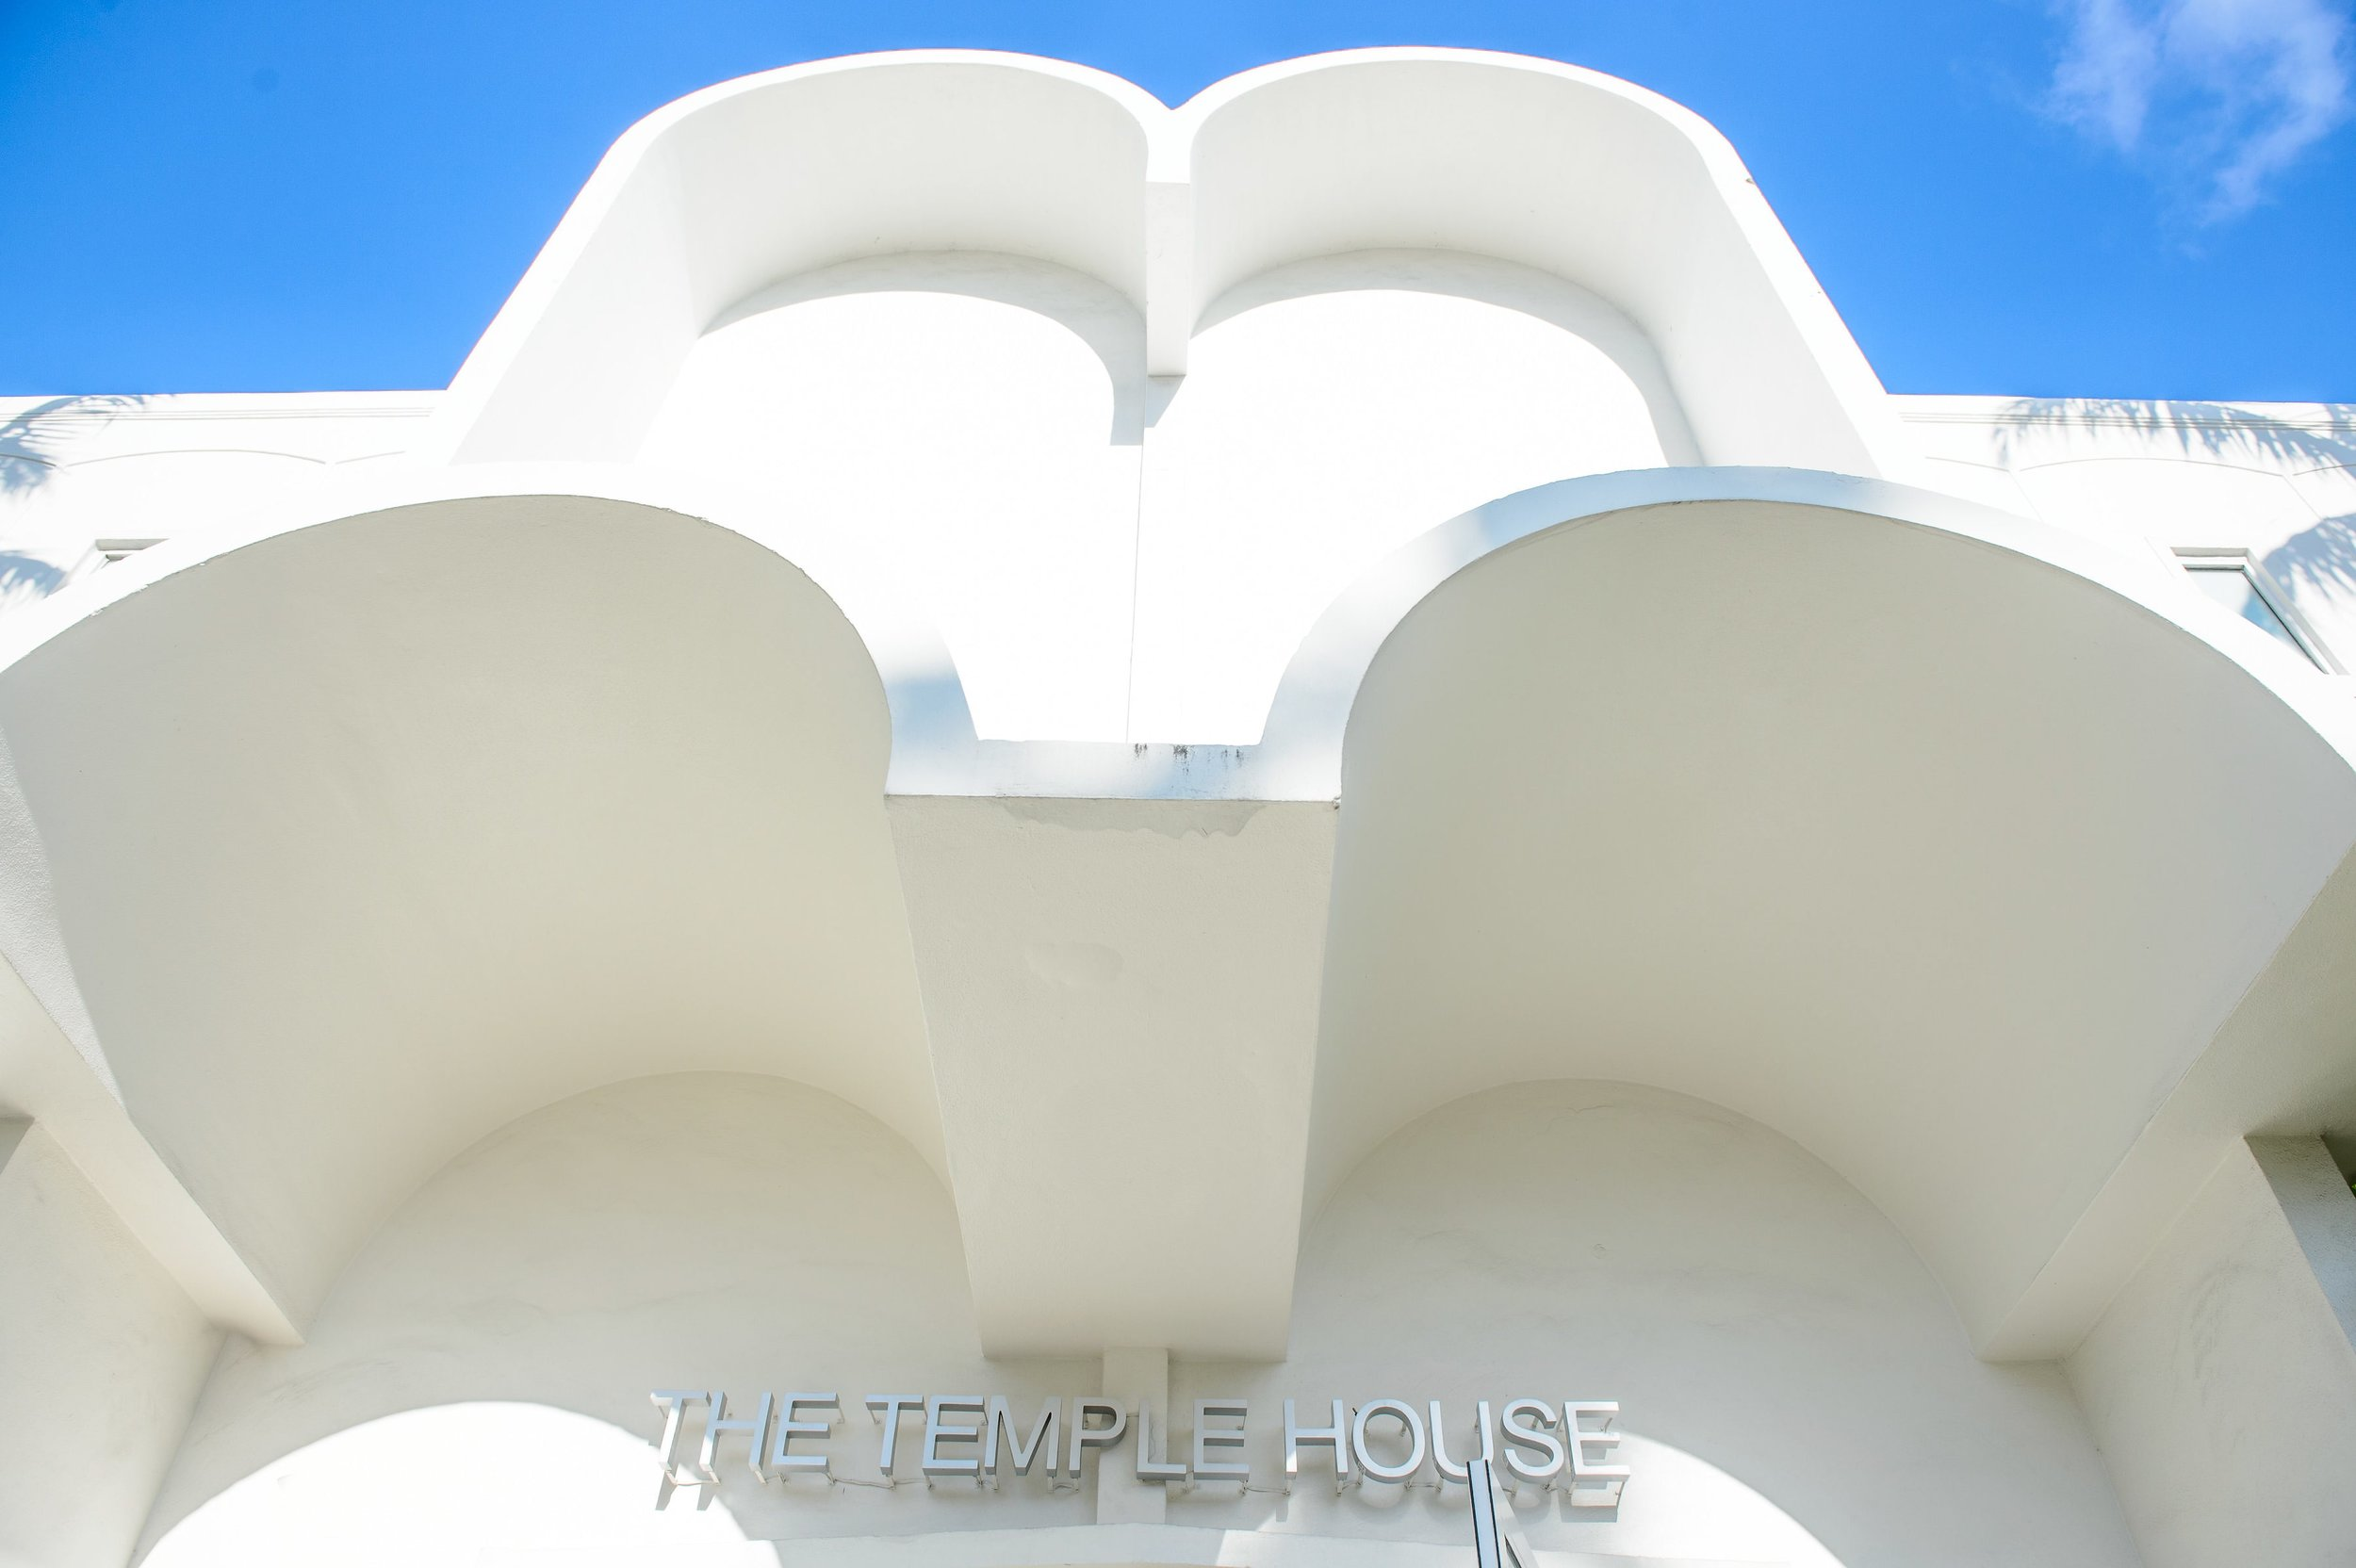 the_temple_house_events-3-min.jpg